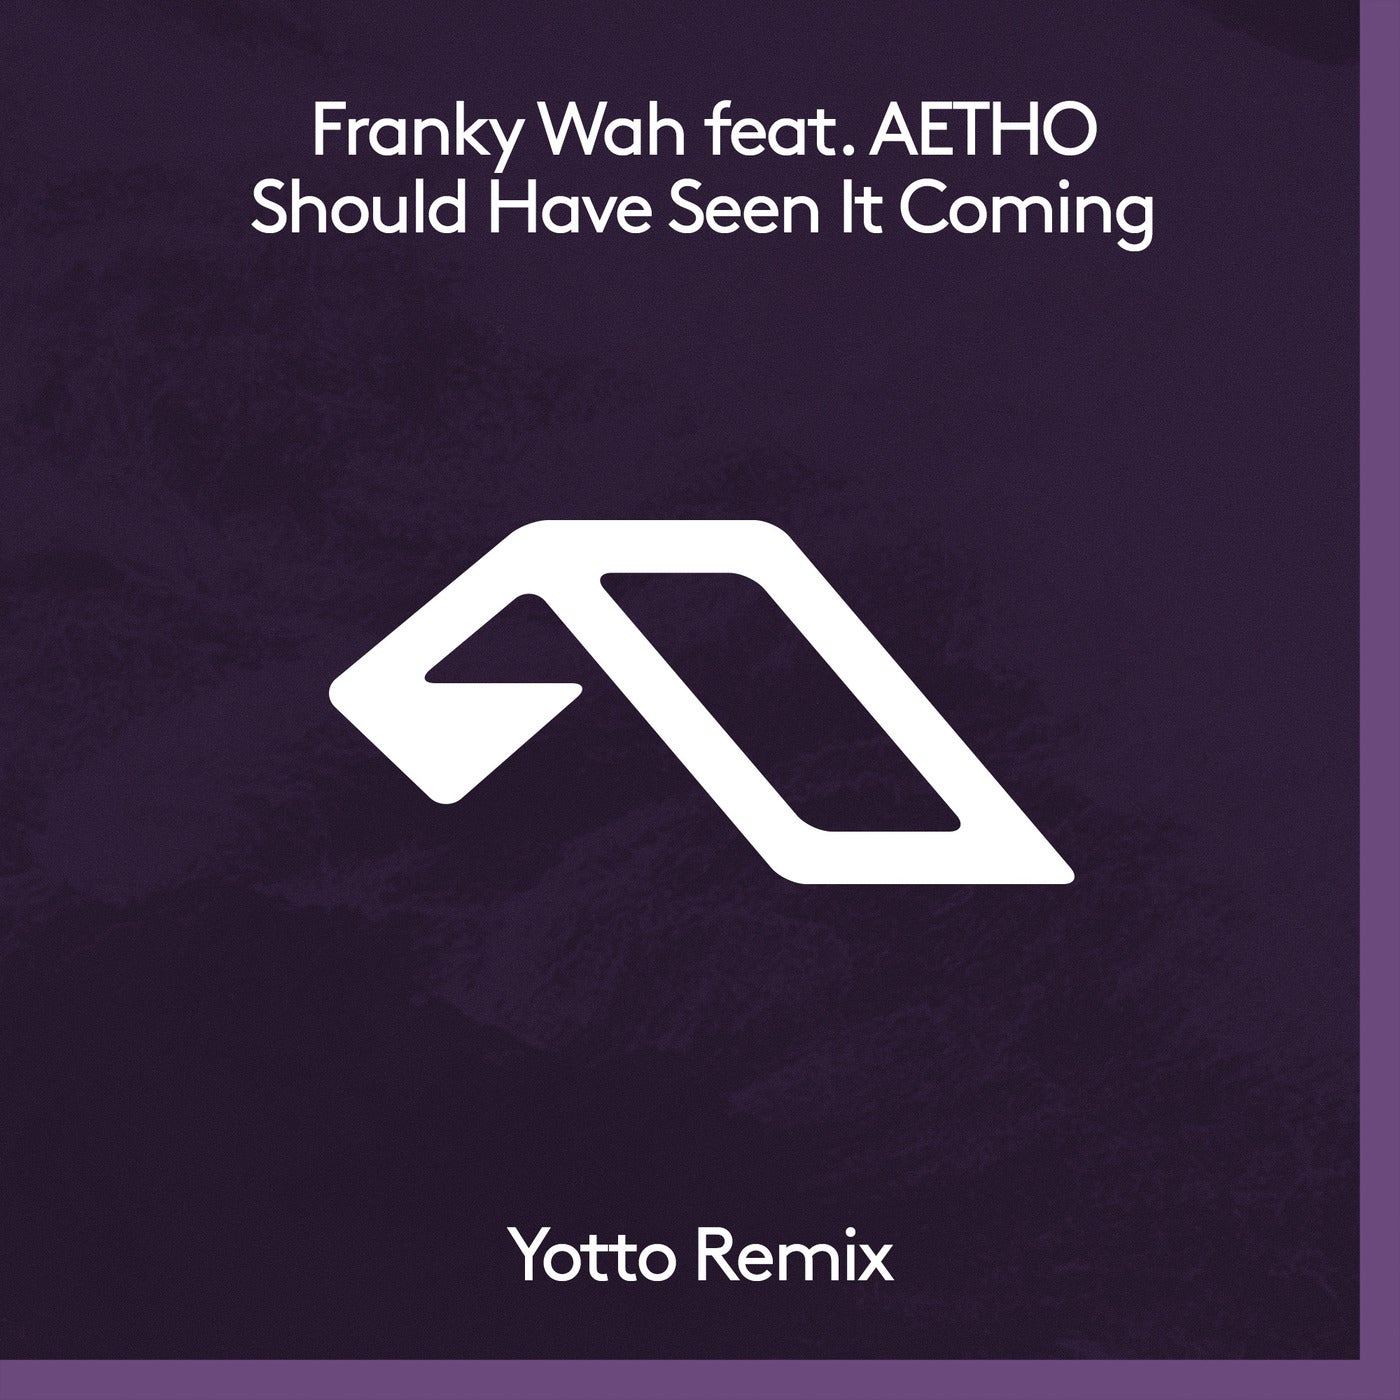 Should Have Seen It Coming feat. AETHO (Yotto Extended Mix)